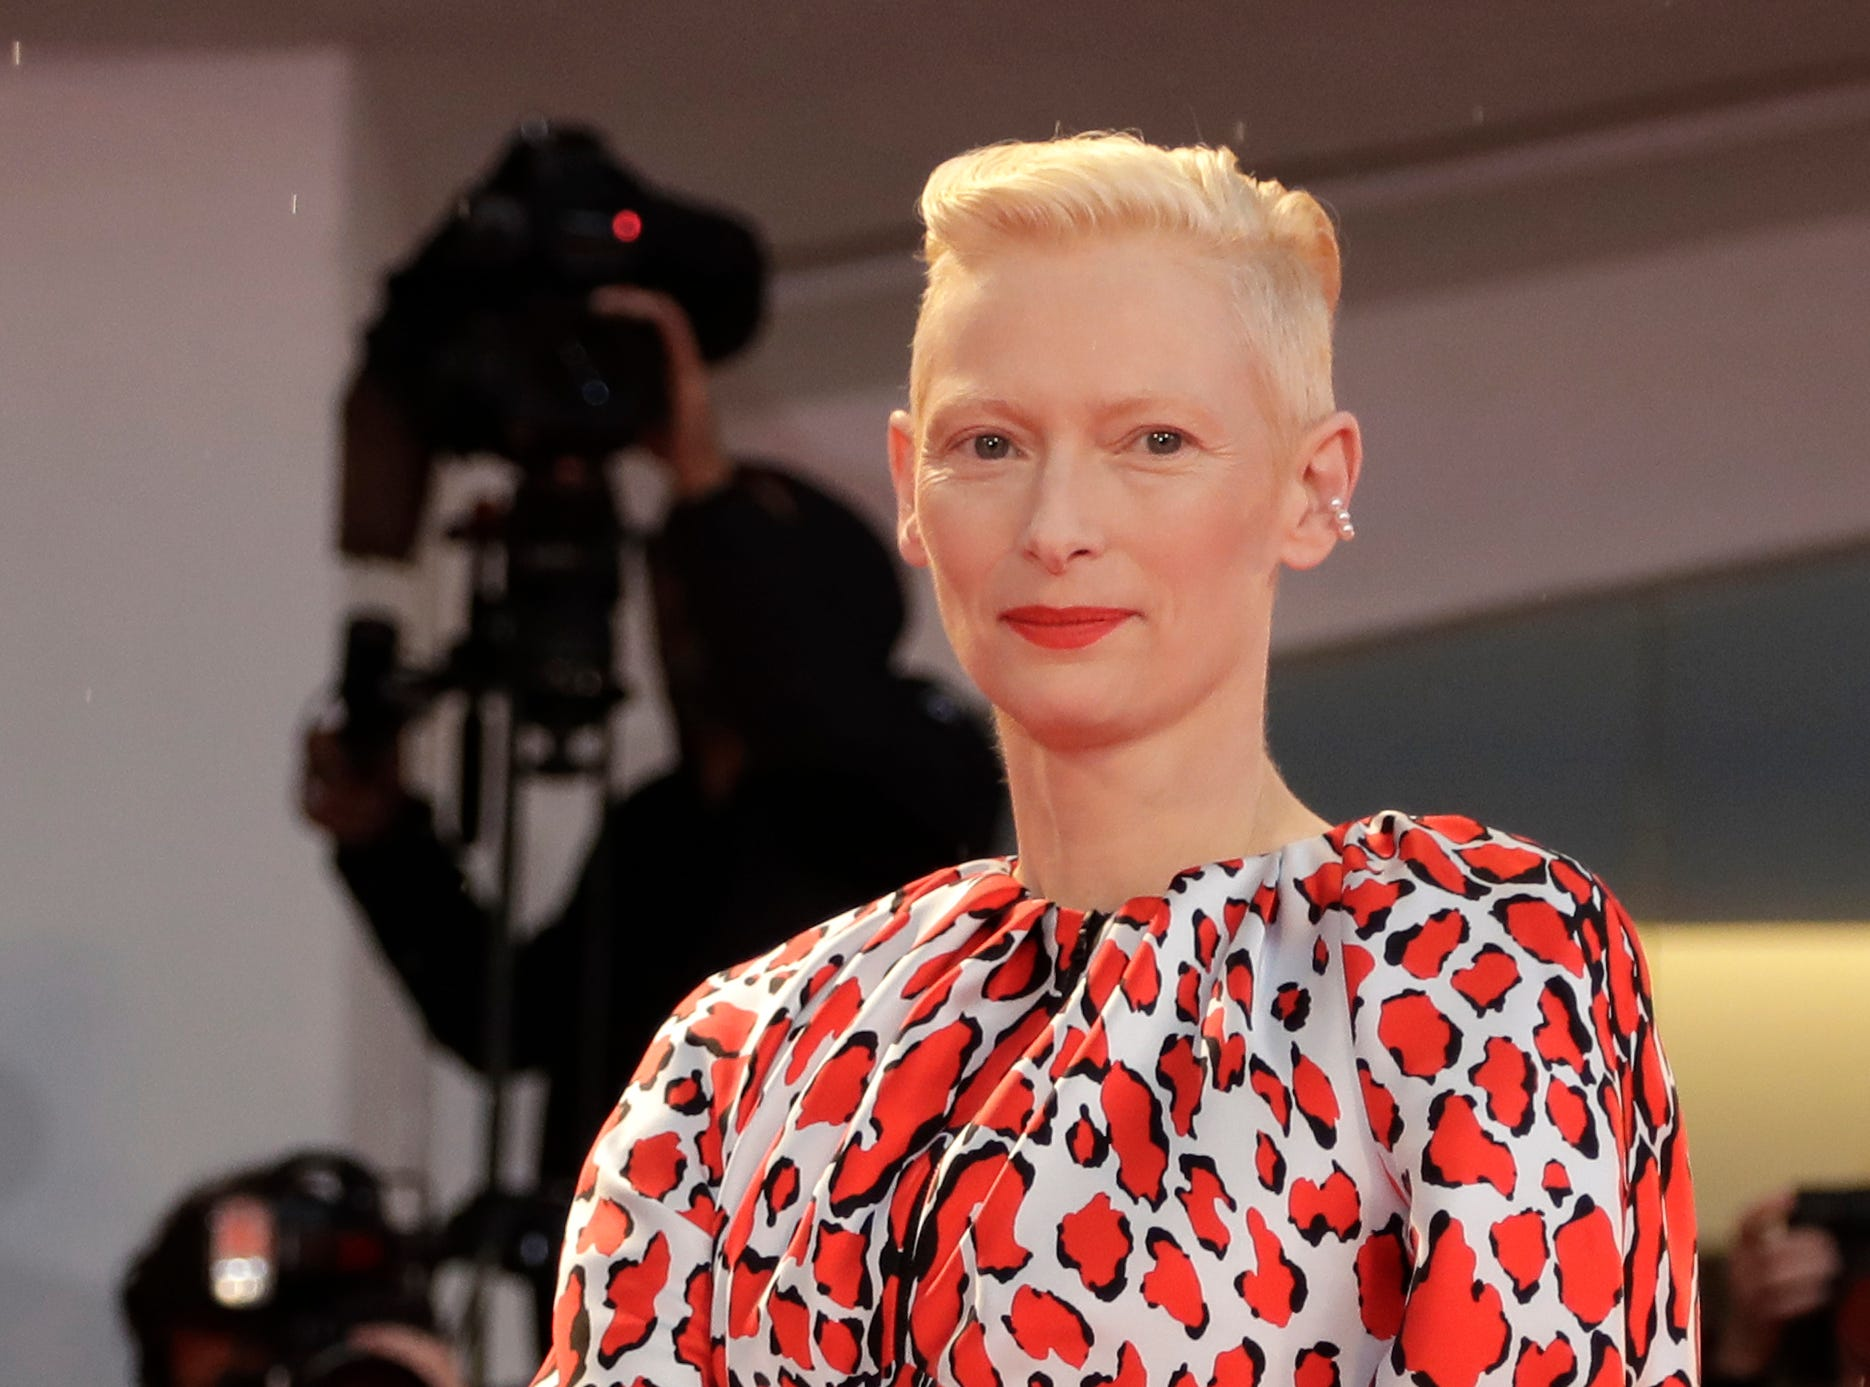 Actress Tilda Swinton poses for photographers upon arrival at the premiere of the film 'At Eternity's Gate' at the 75th edition of the Venice Film Festival in Venice, Italy, Monday, Sept. 3, 2018. (AP Photo/Kirsty Wigglesworth) ORG XMIT: LKW135